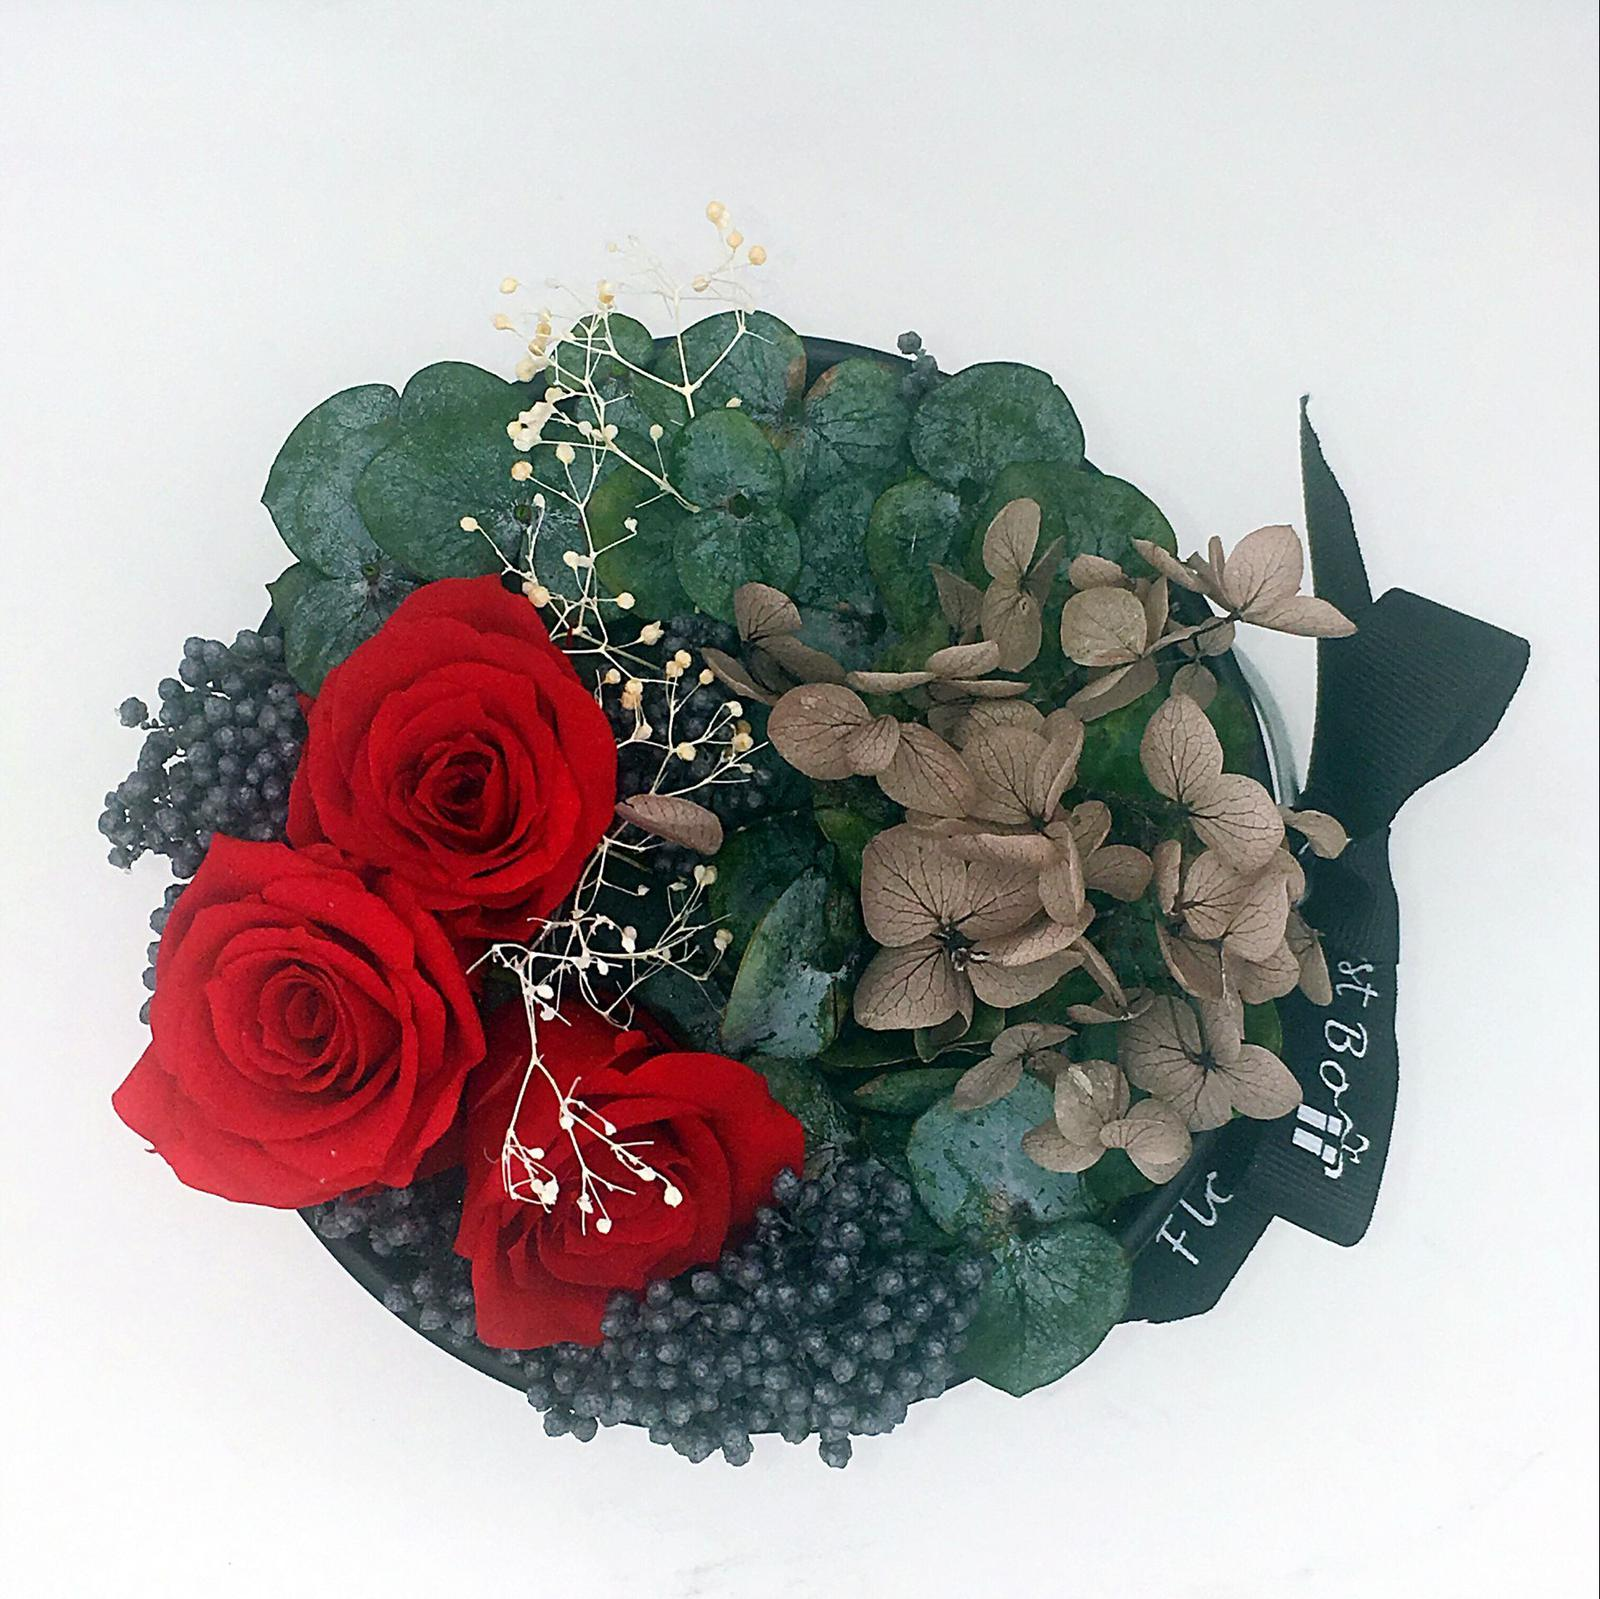 Red rose in a black bucket